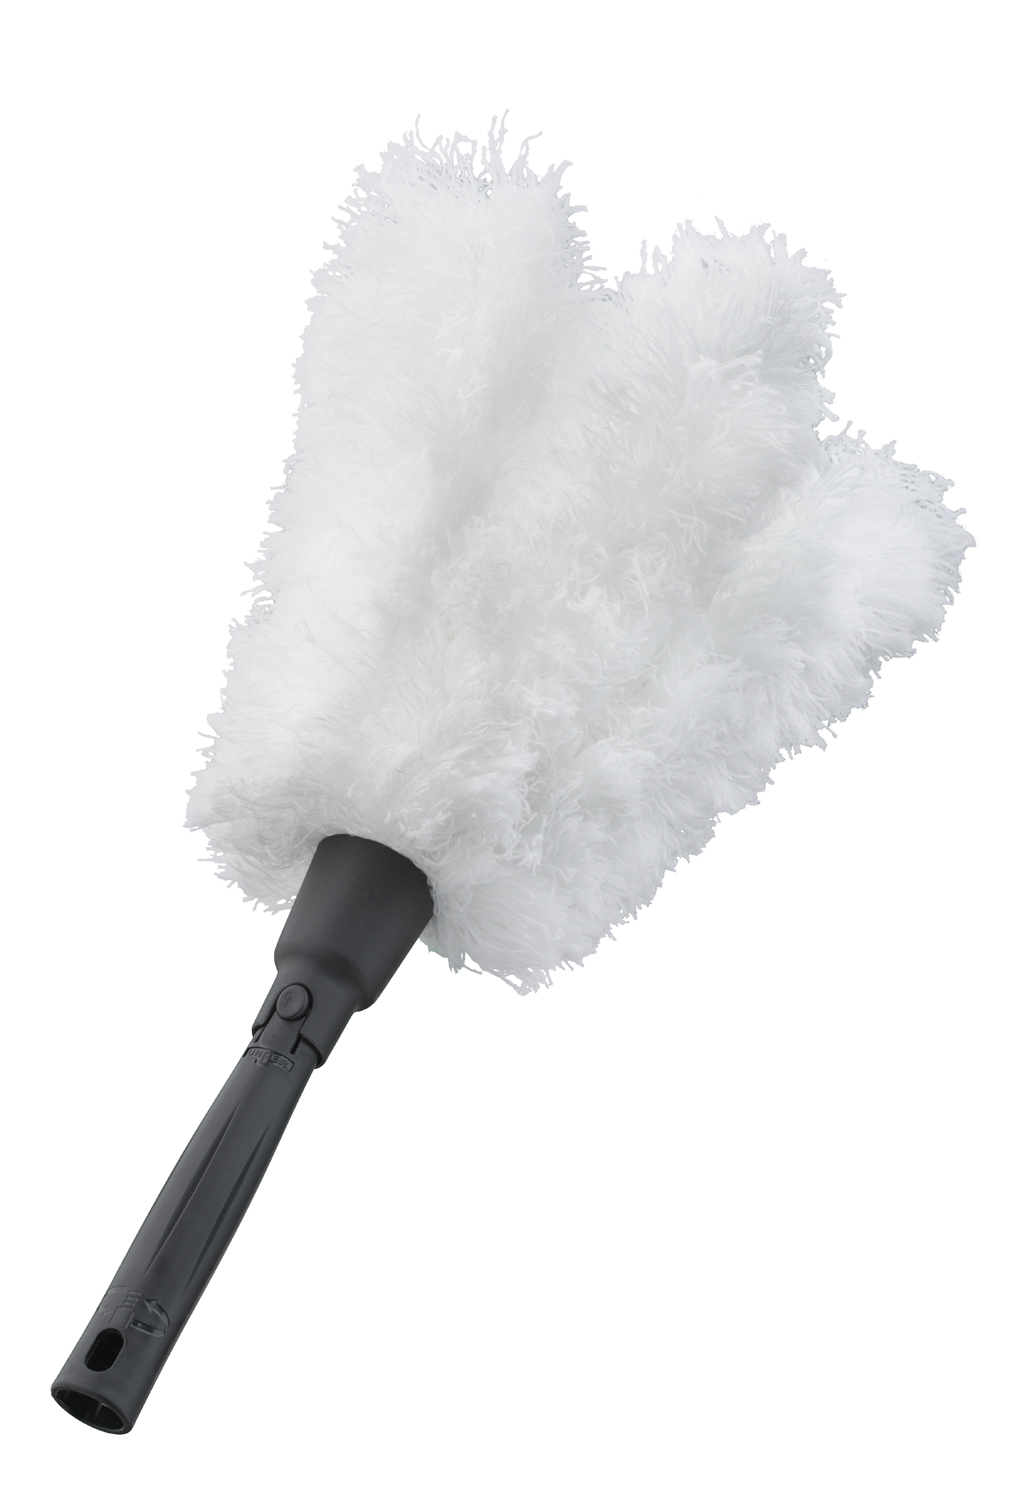 UNGER 964440 MICROFIBER FEATHER DUSTER ATTRACTS UP TO